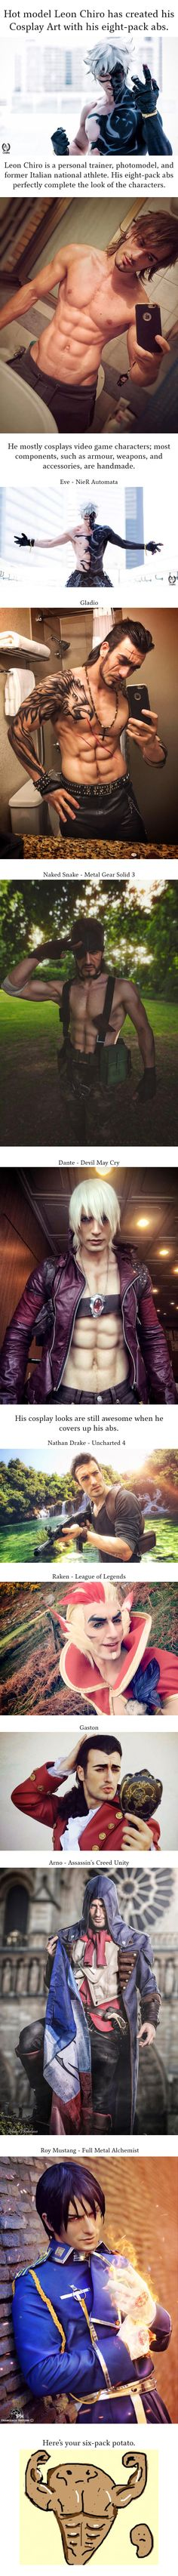 Italian Cosplayer Catches Our Eyes With His Ripped Body